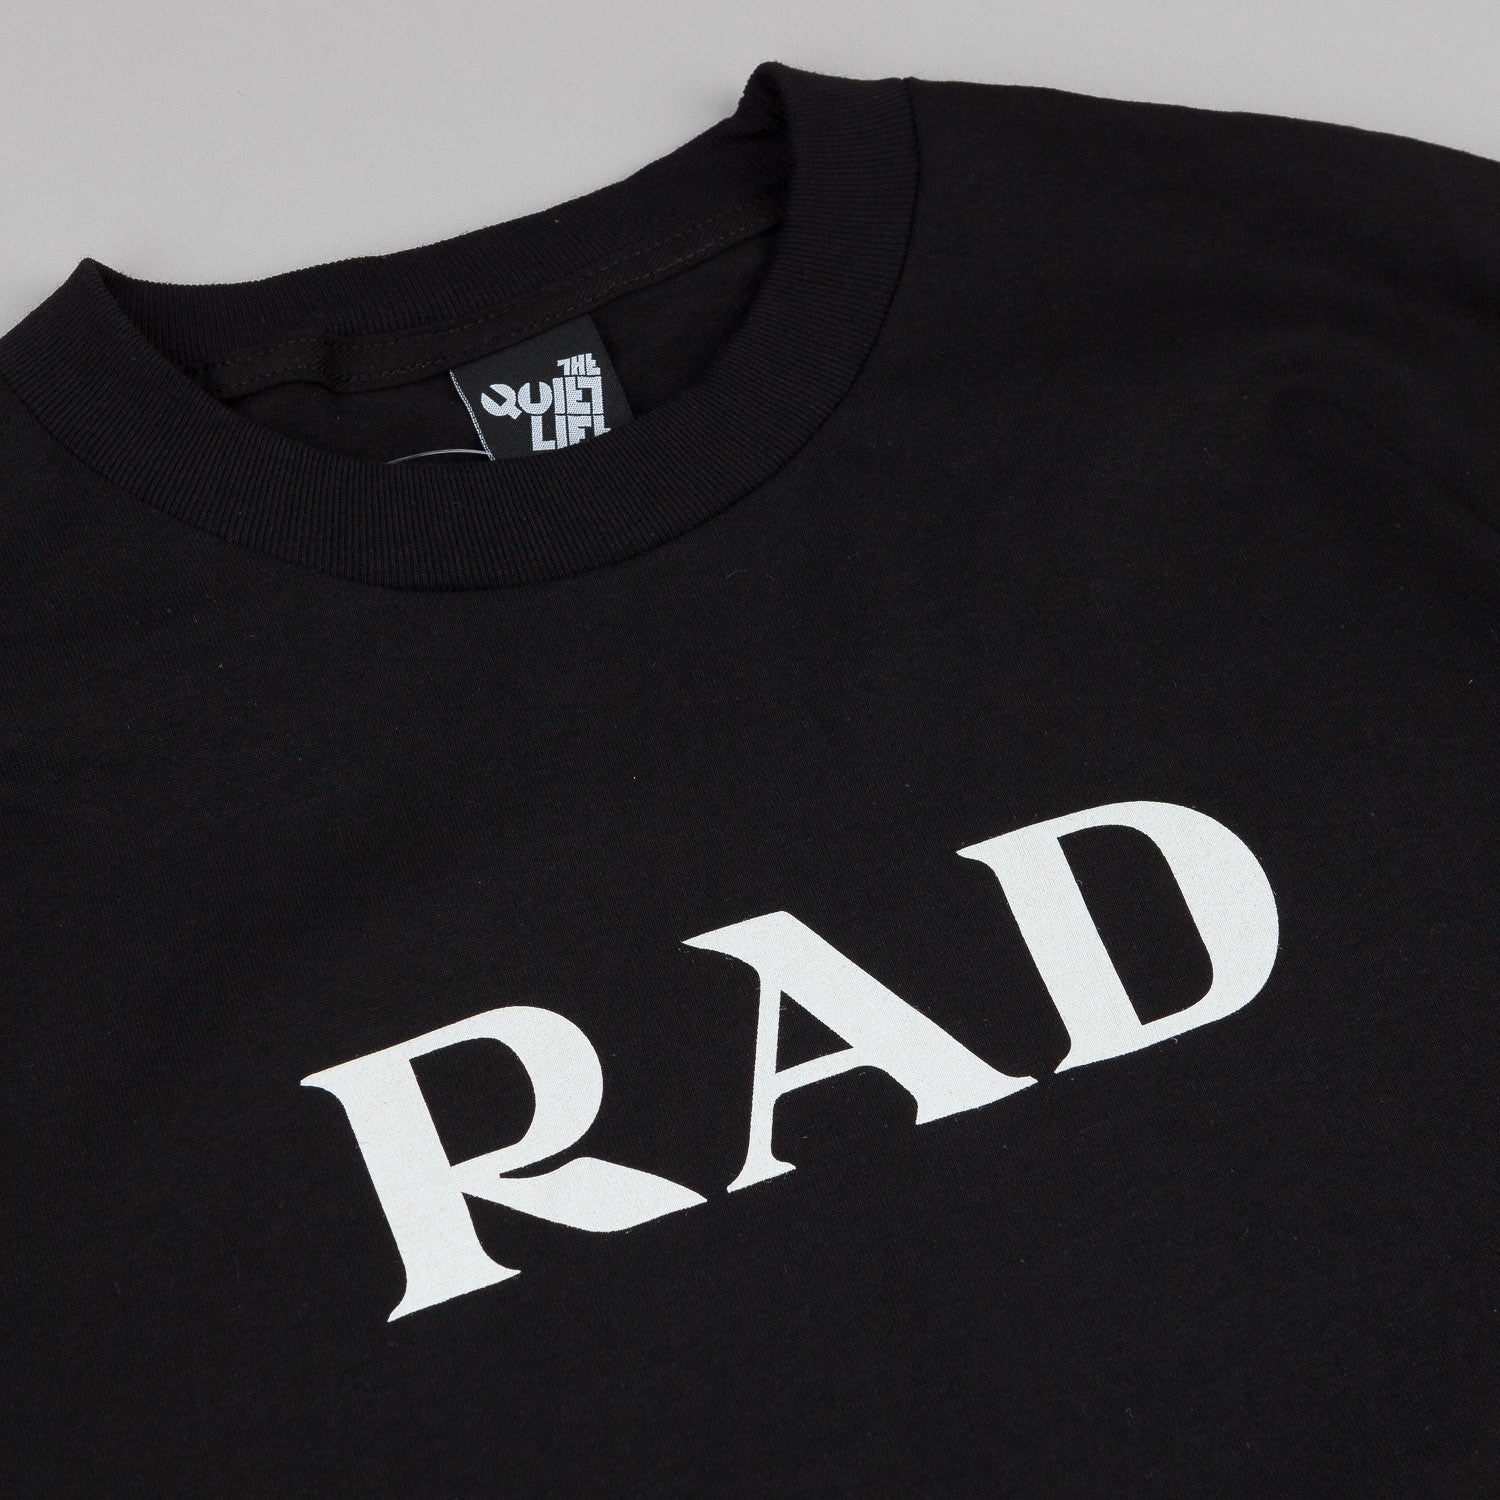 The Quiet Life Rad T-Shirt - Black